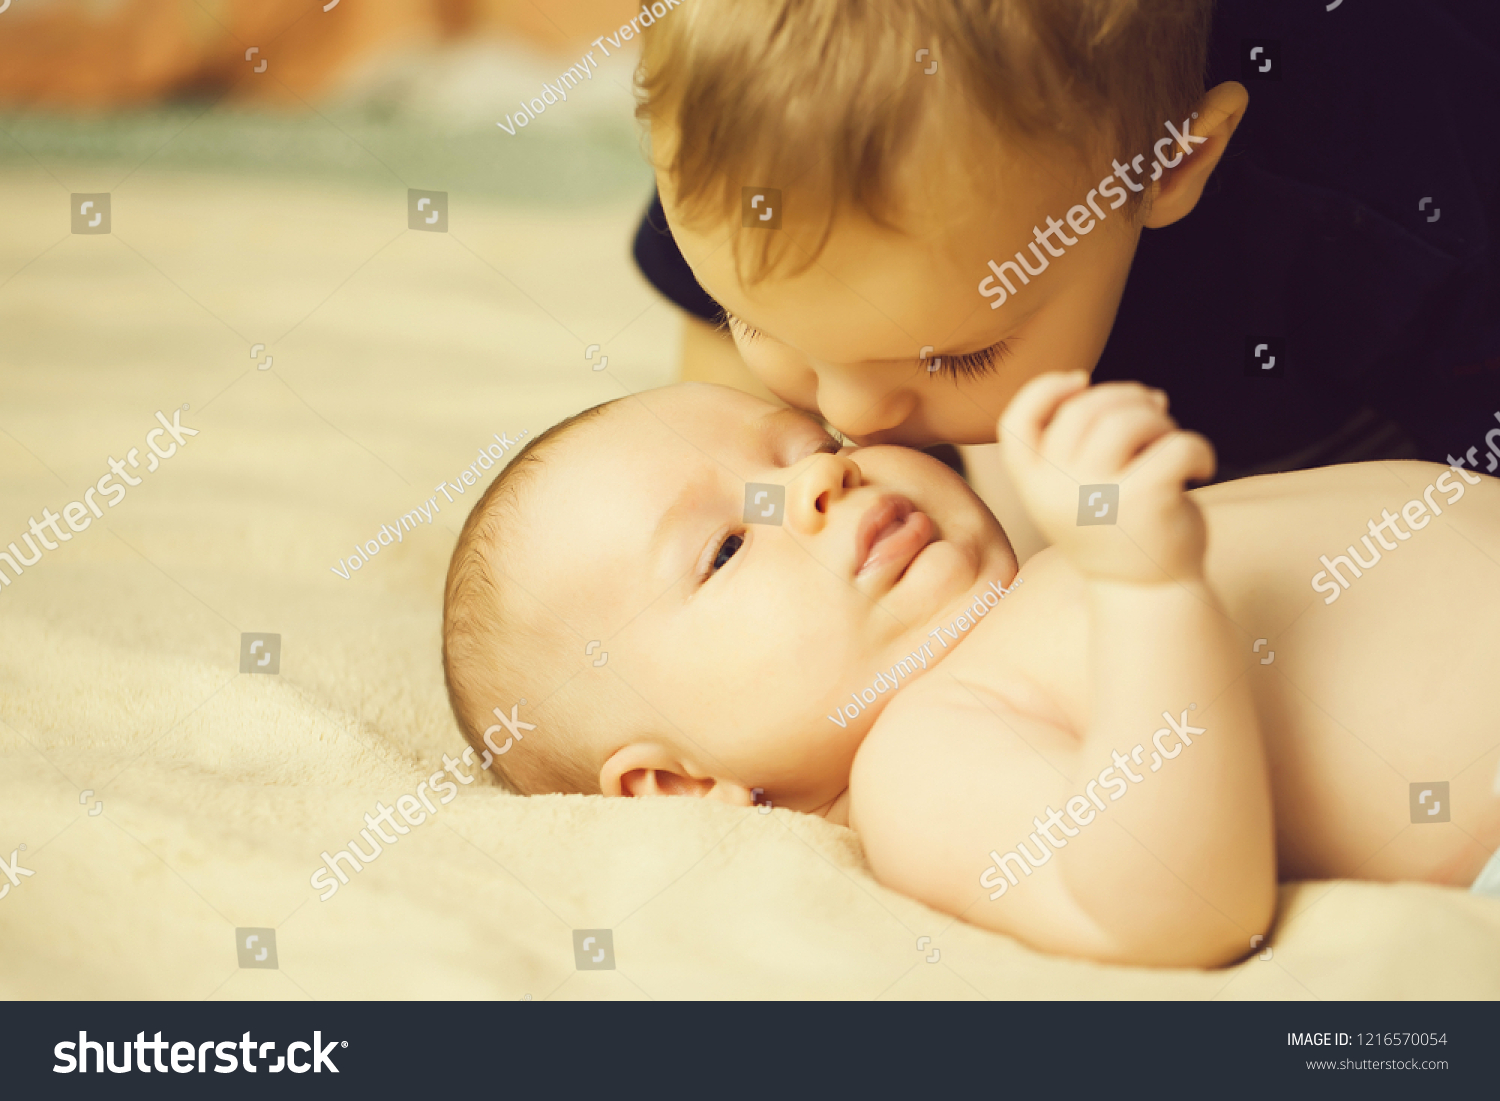 78e625707 Little Naked Baby Lying On Bed Stock Photo (Edit Now) 1216570054 ...